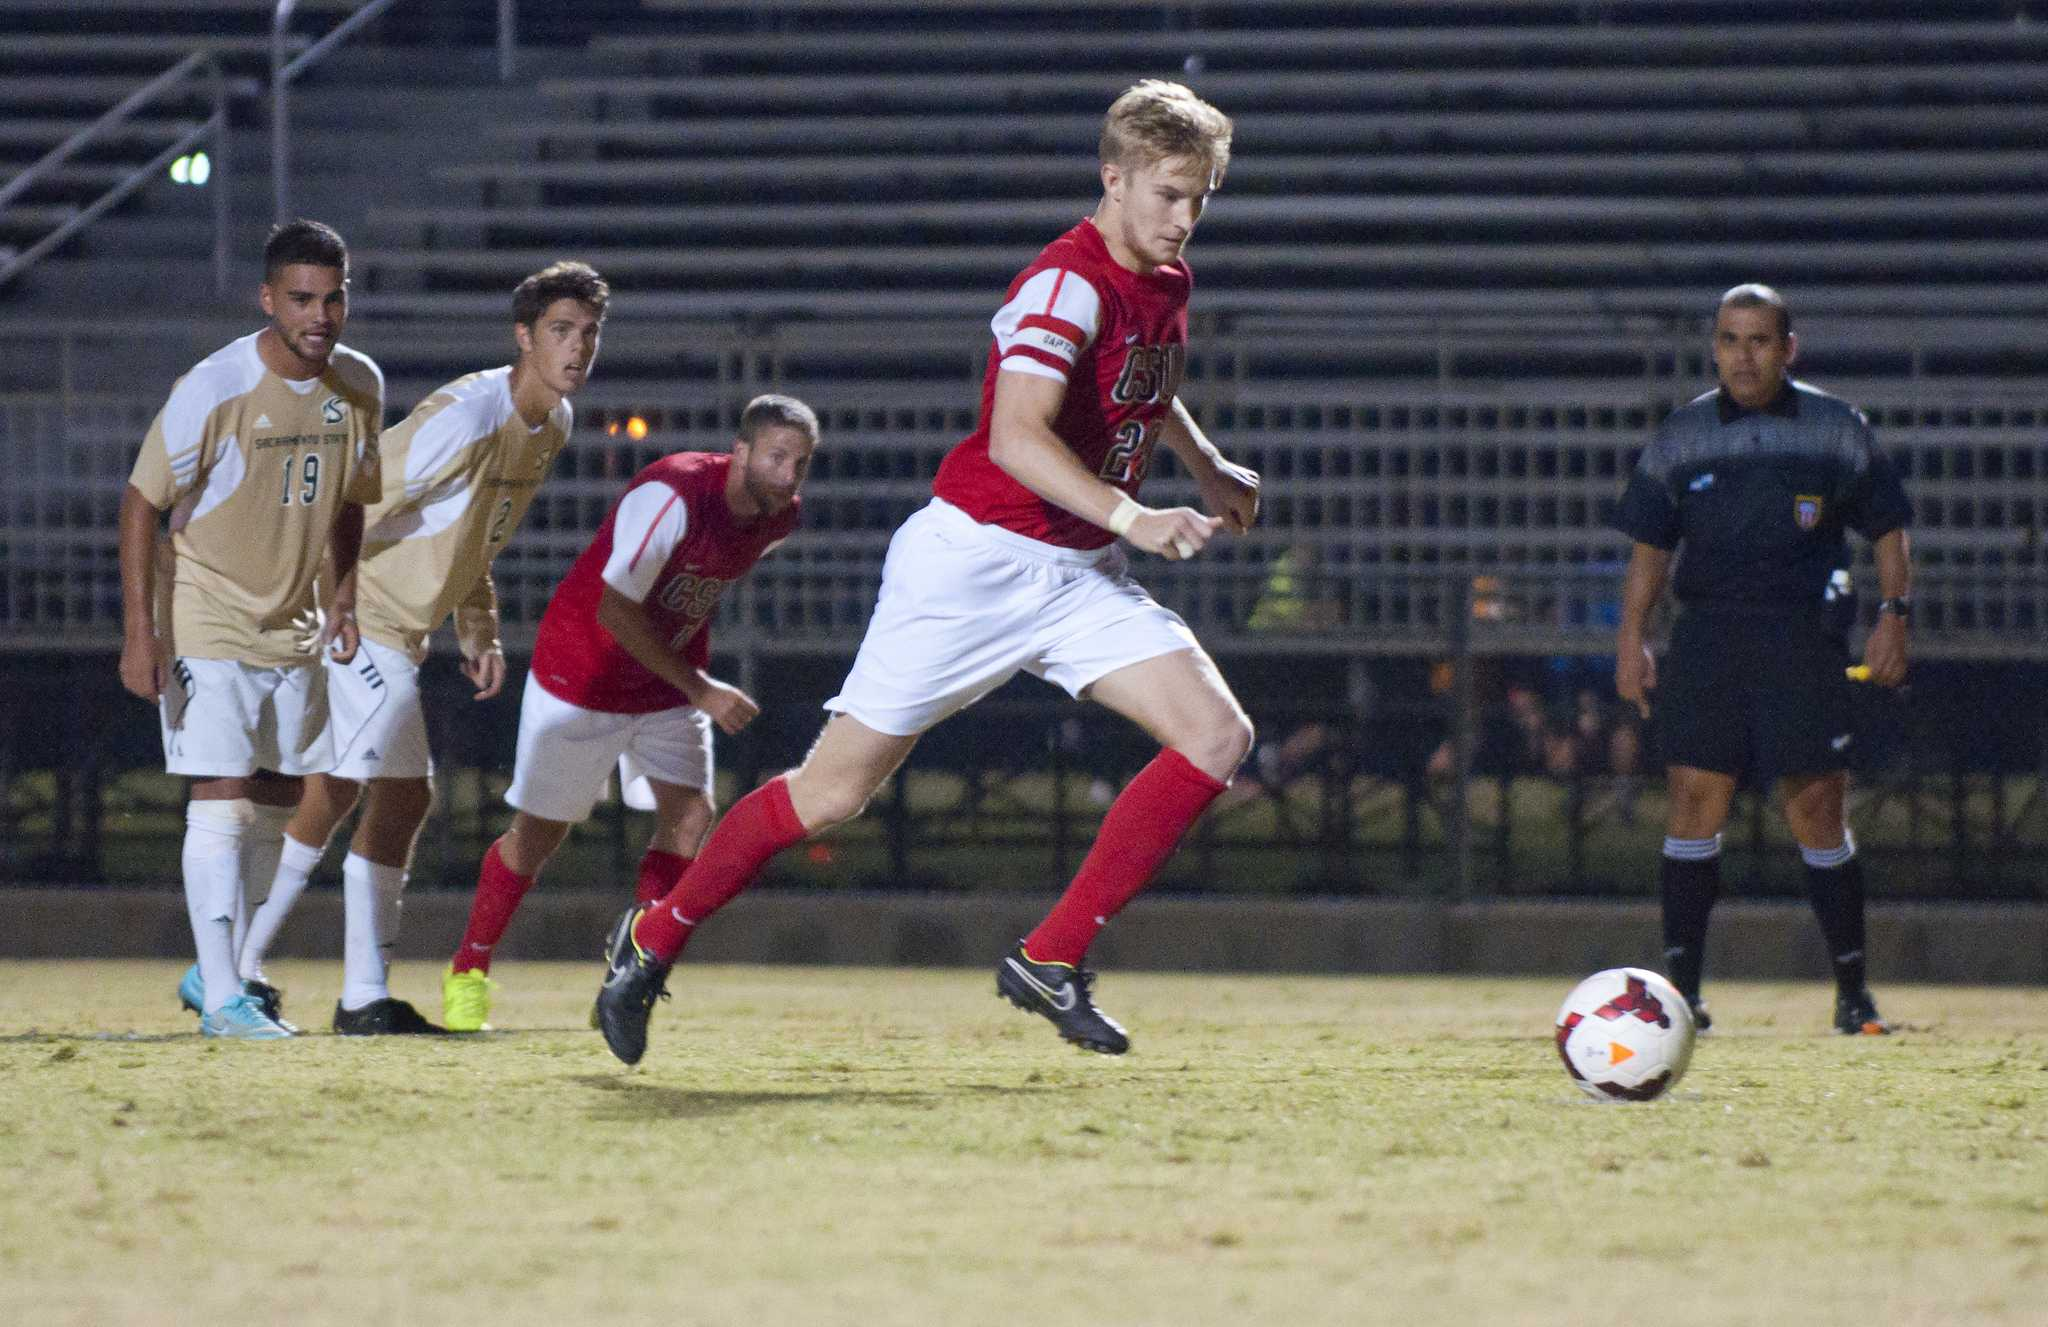 Senior defender Trevor Morley not only continued to be a stabilizing force for the Matadors on defense this season, but also scored for the first time in his career. Photo credit: File Photo/The Sundial